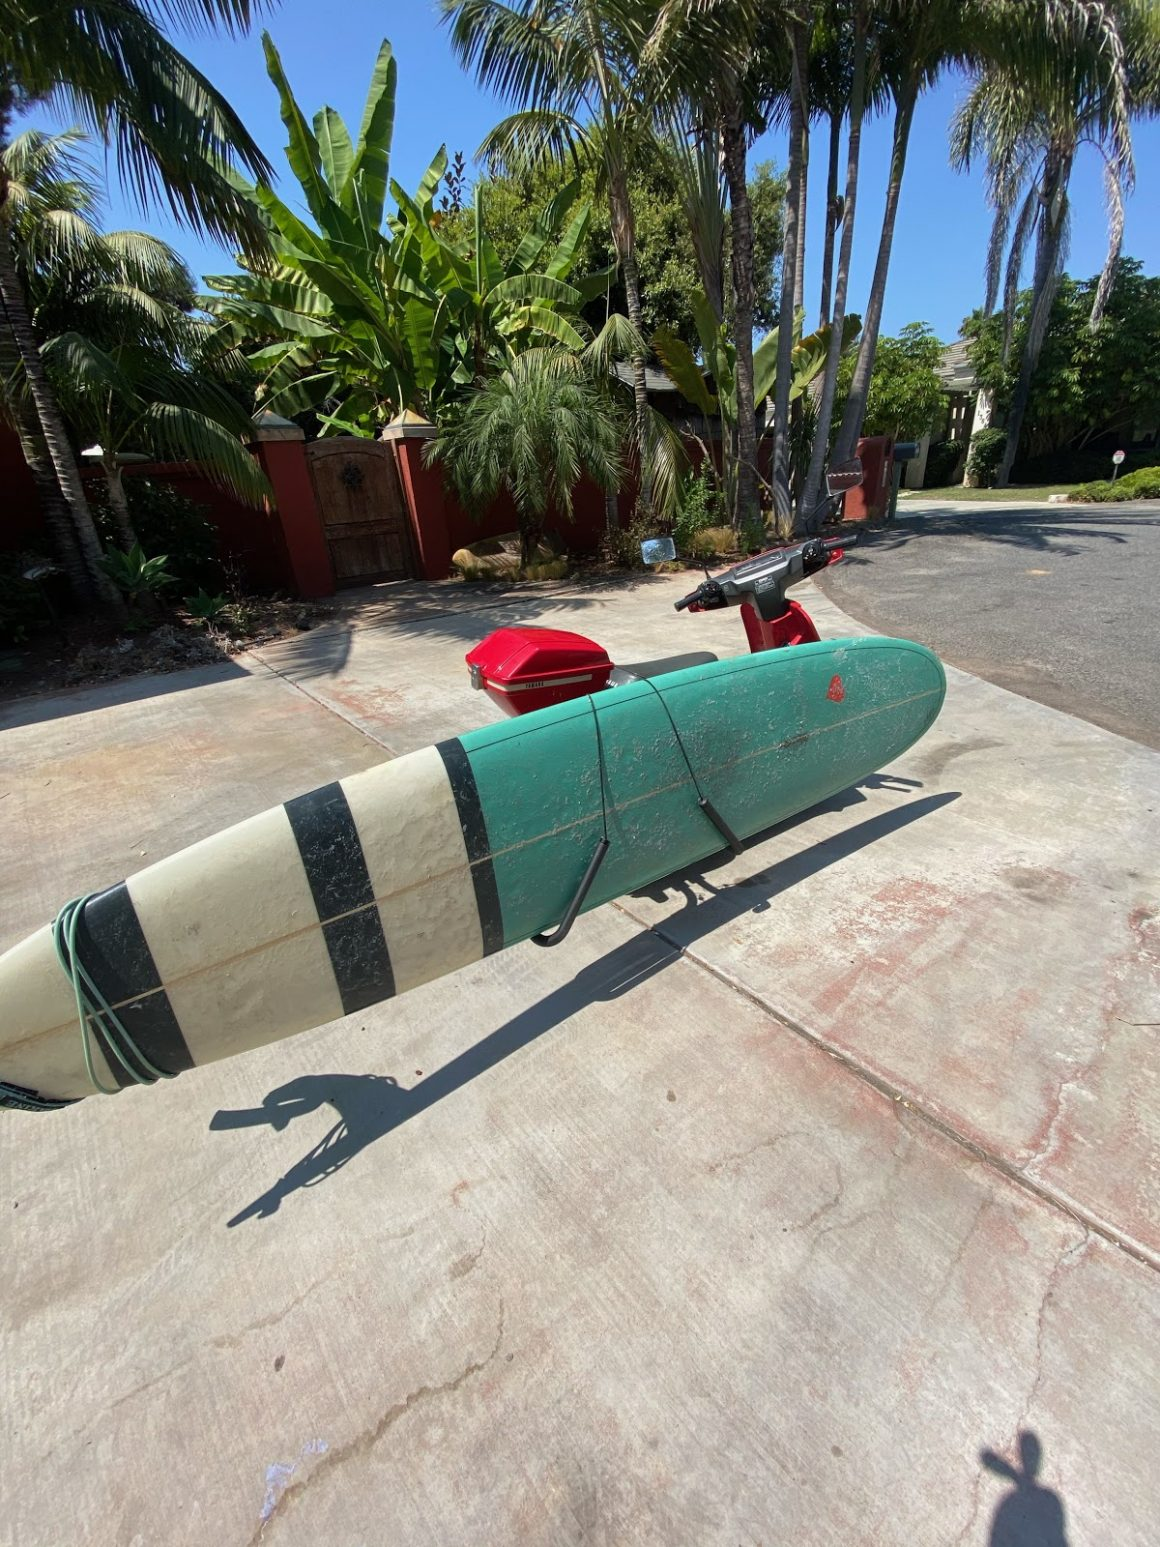 MY SCOOTER AND SURFBOARD